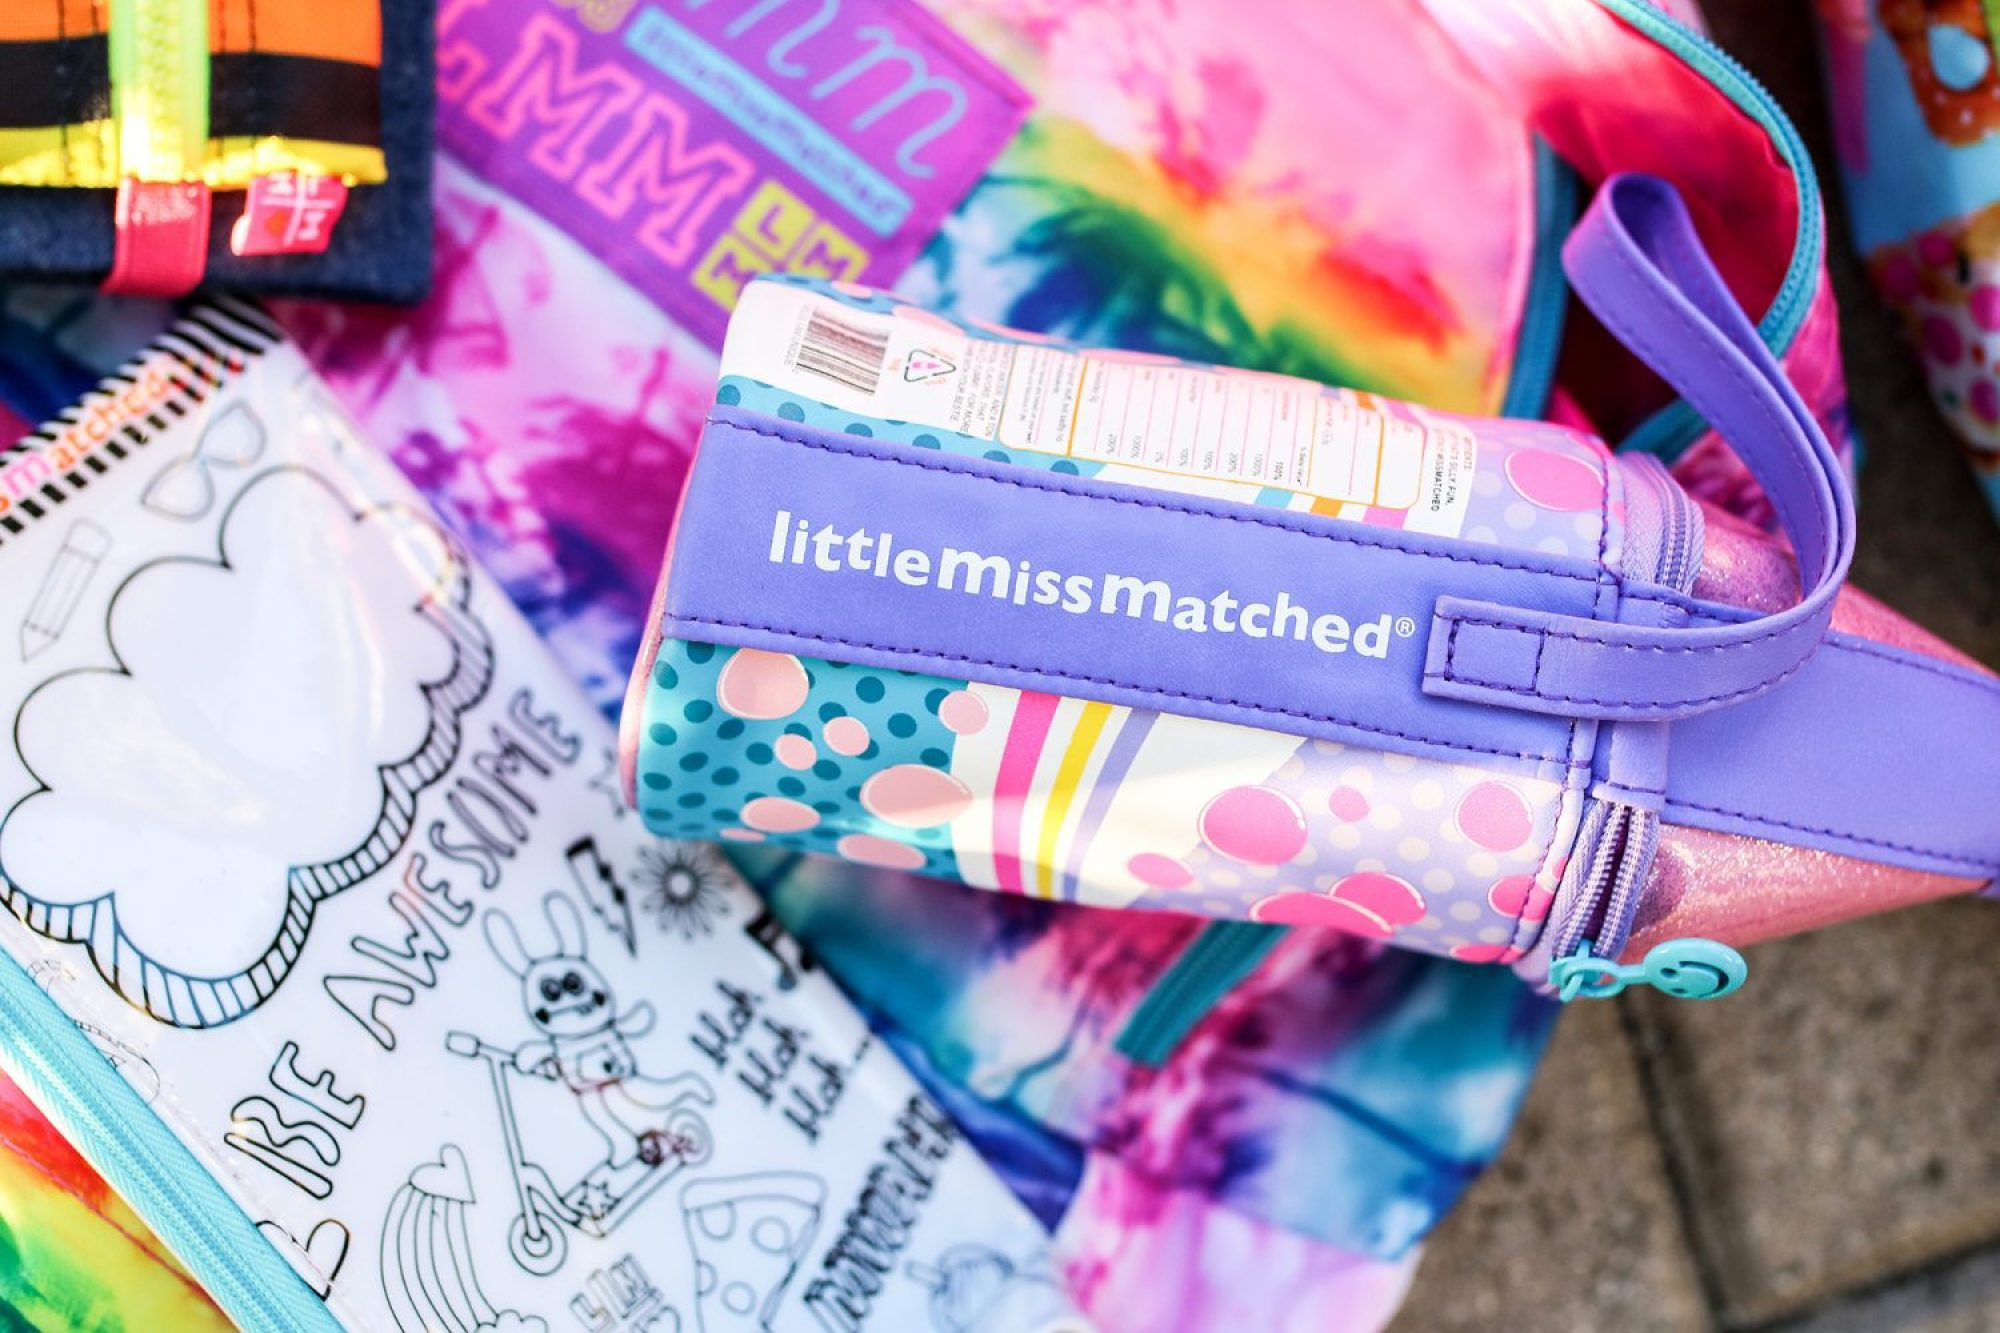 back to school haul, back to school, school supplies, colorful, fun, little miss matched, little missmatched, family fun, family friendly, children, kids, mom blog, mom blogger, mommy blog, mommy blogger, 2018, family blog, parenting blog, the super mom life, thesupermomlife, travel blogger, parenting blogger, family blogger